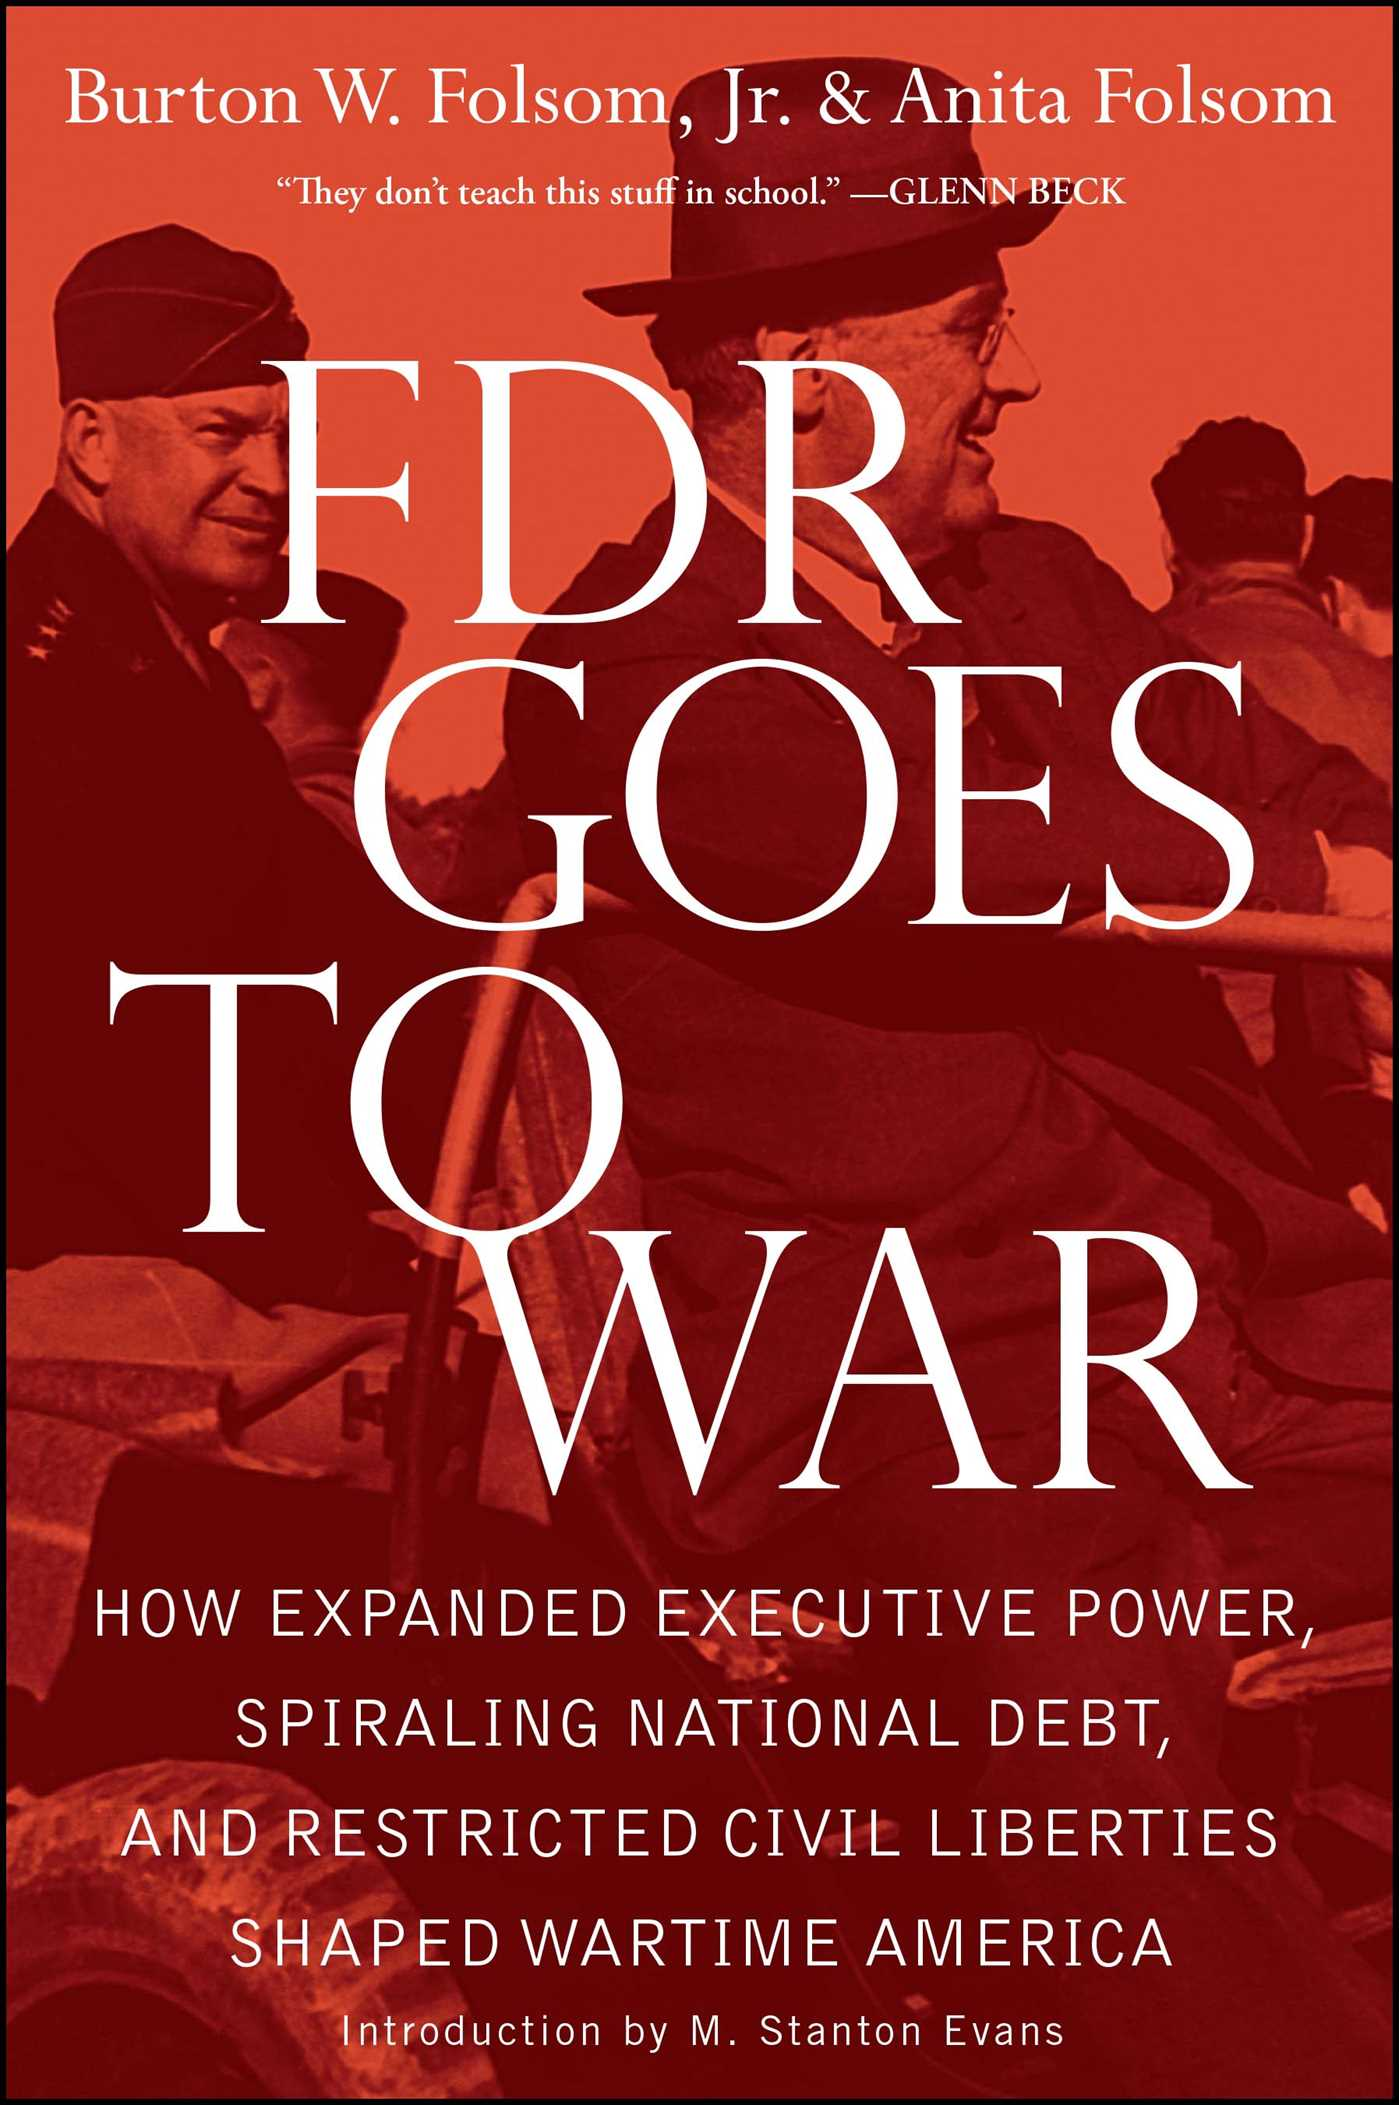 Fdr-goes-to-war-9781439183243_hr